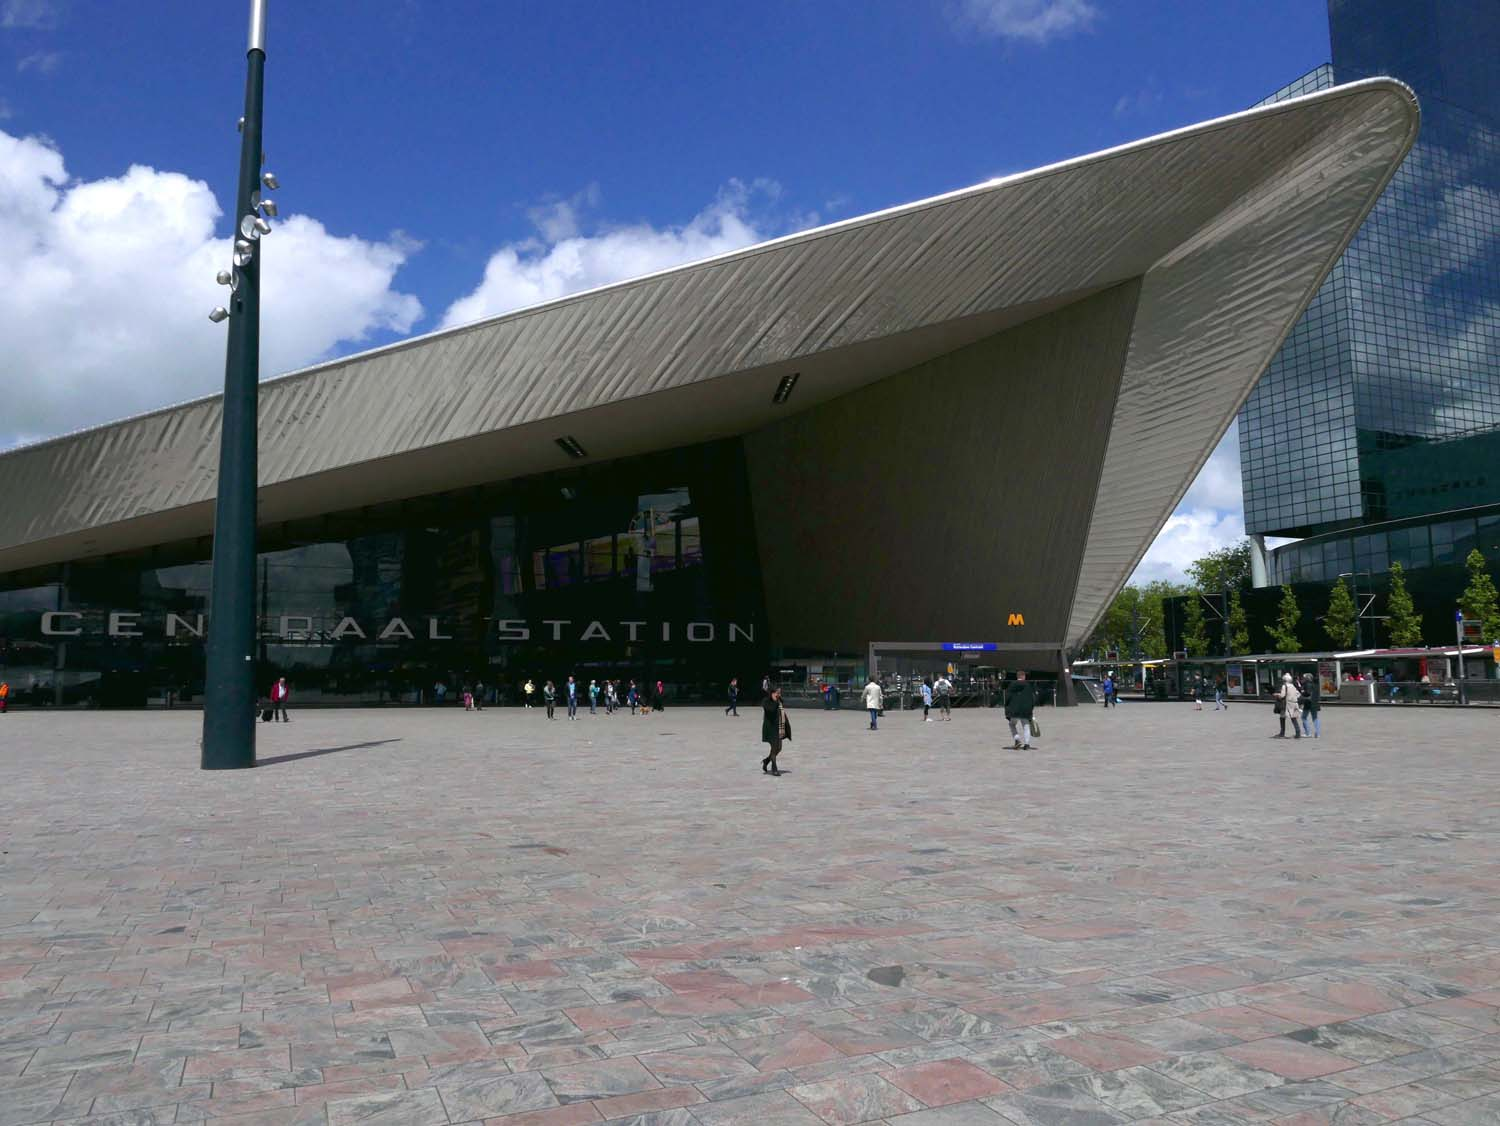 Centraal Station, the main train station, redesigned by Benthem Crouwel Architects + MVSA Architects + West 8